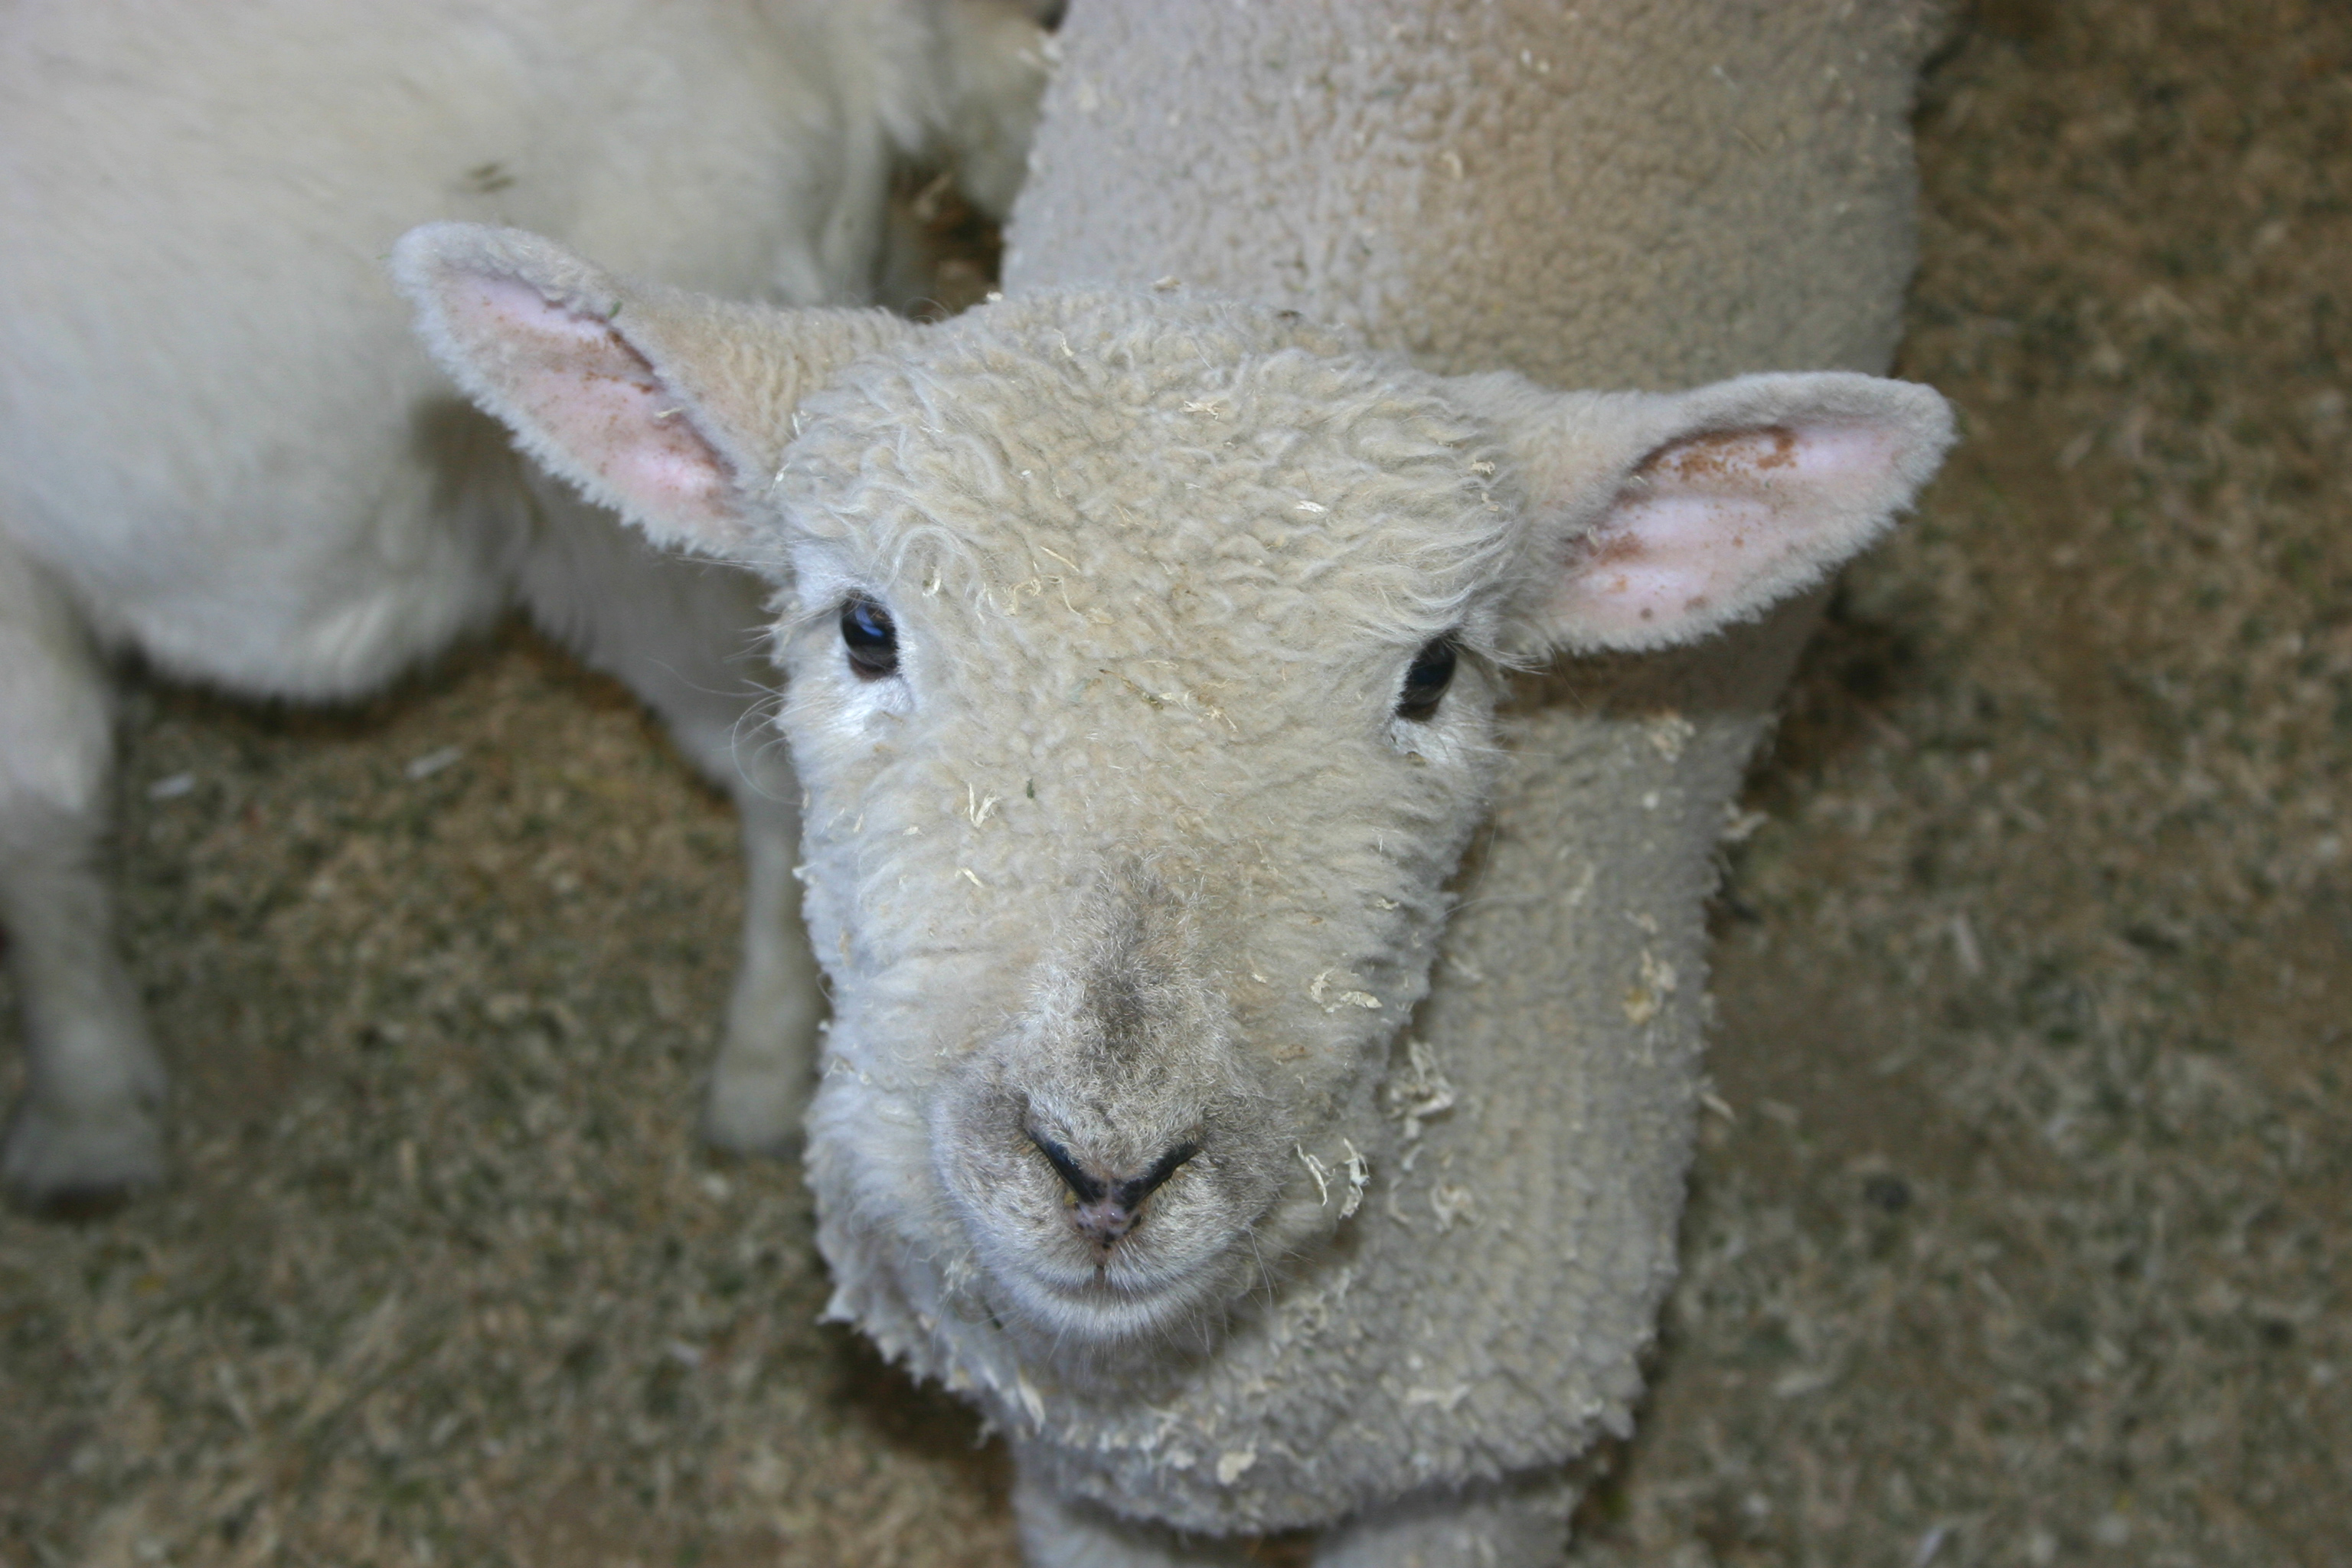 sheep pic from morguefile.com